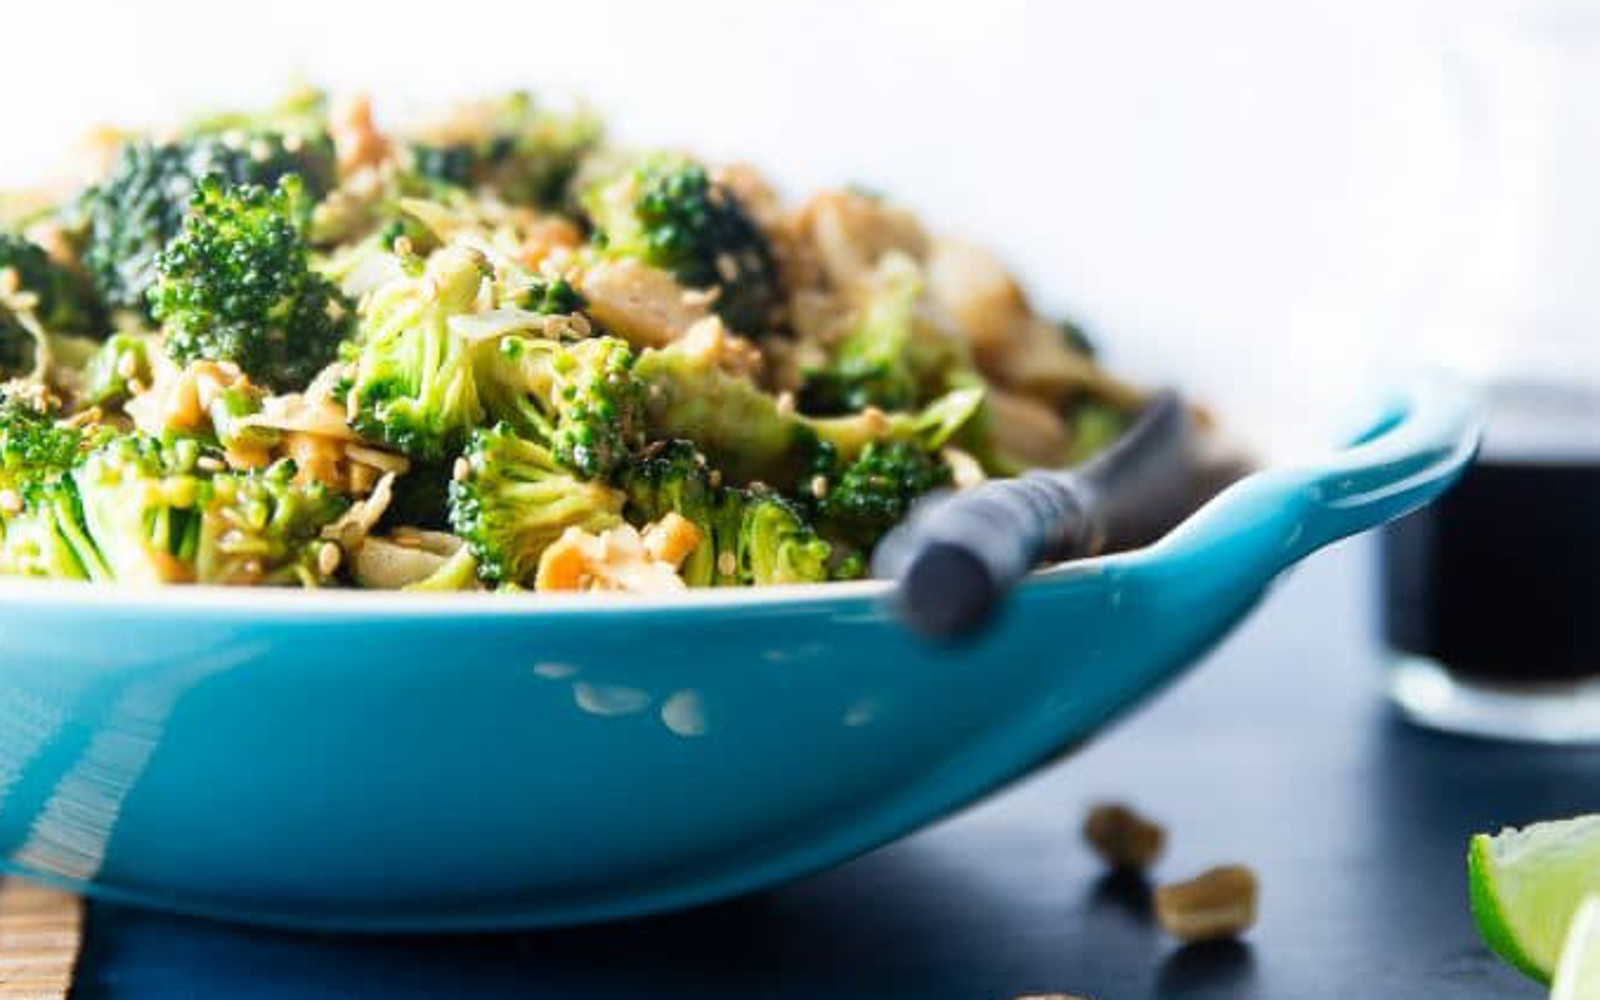 Vegan Asian Healthy Broccoli Salad